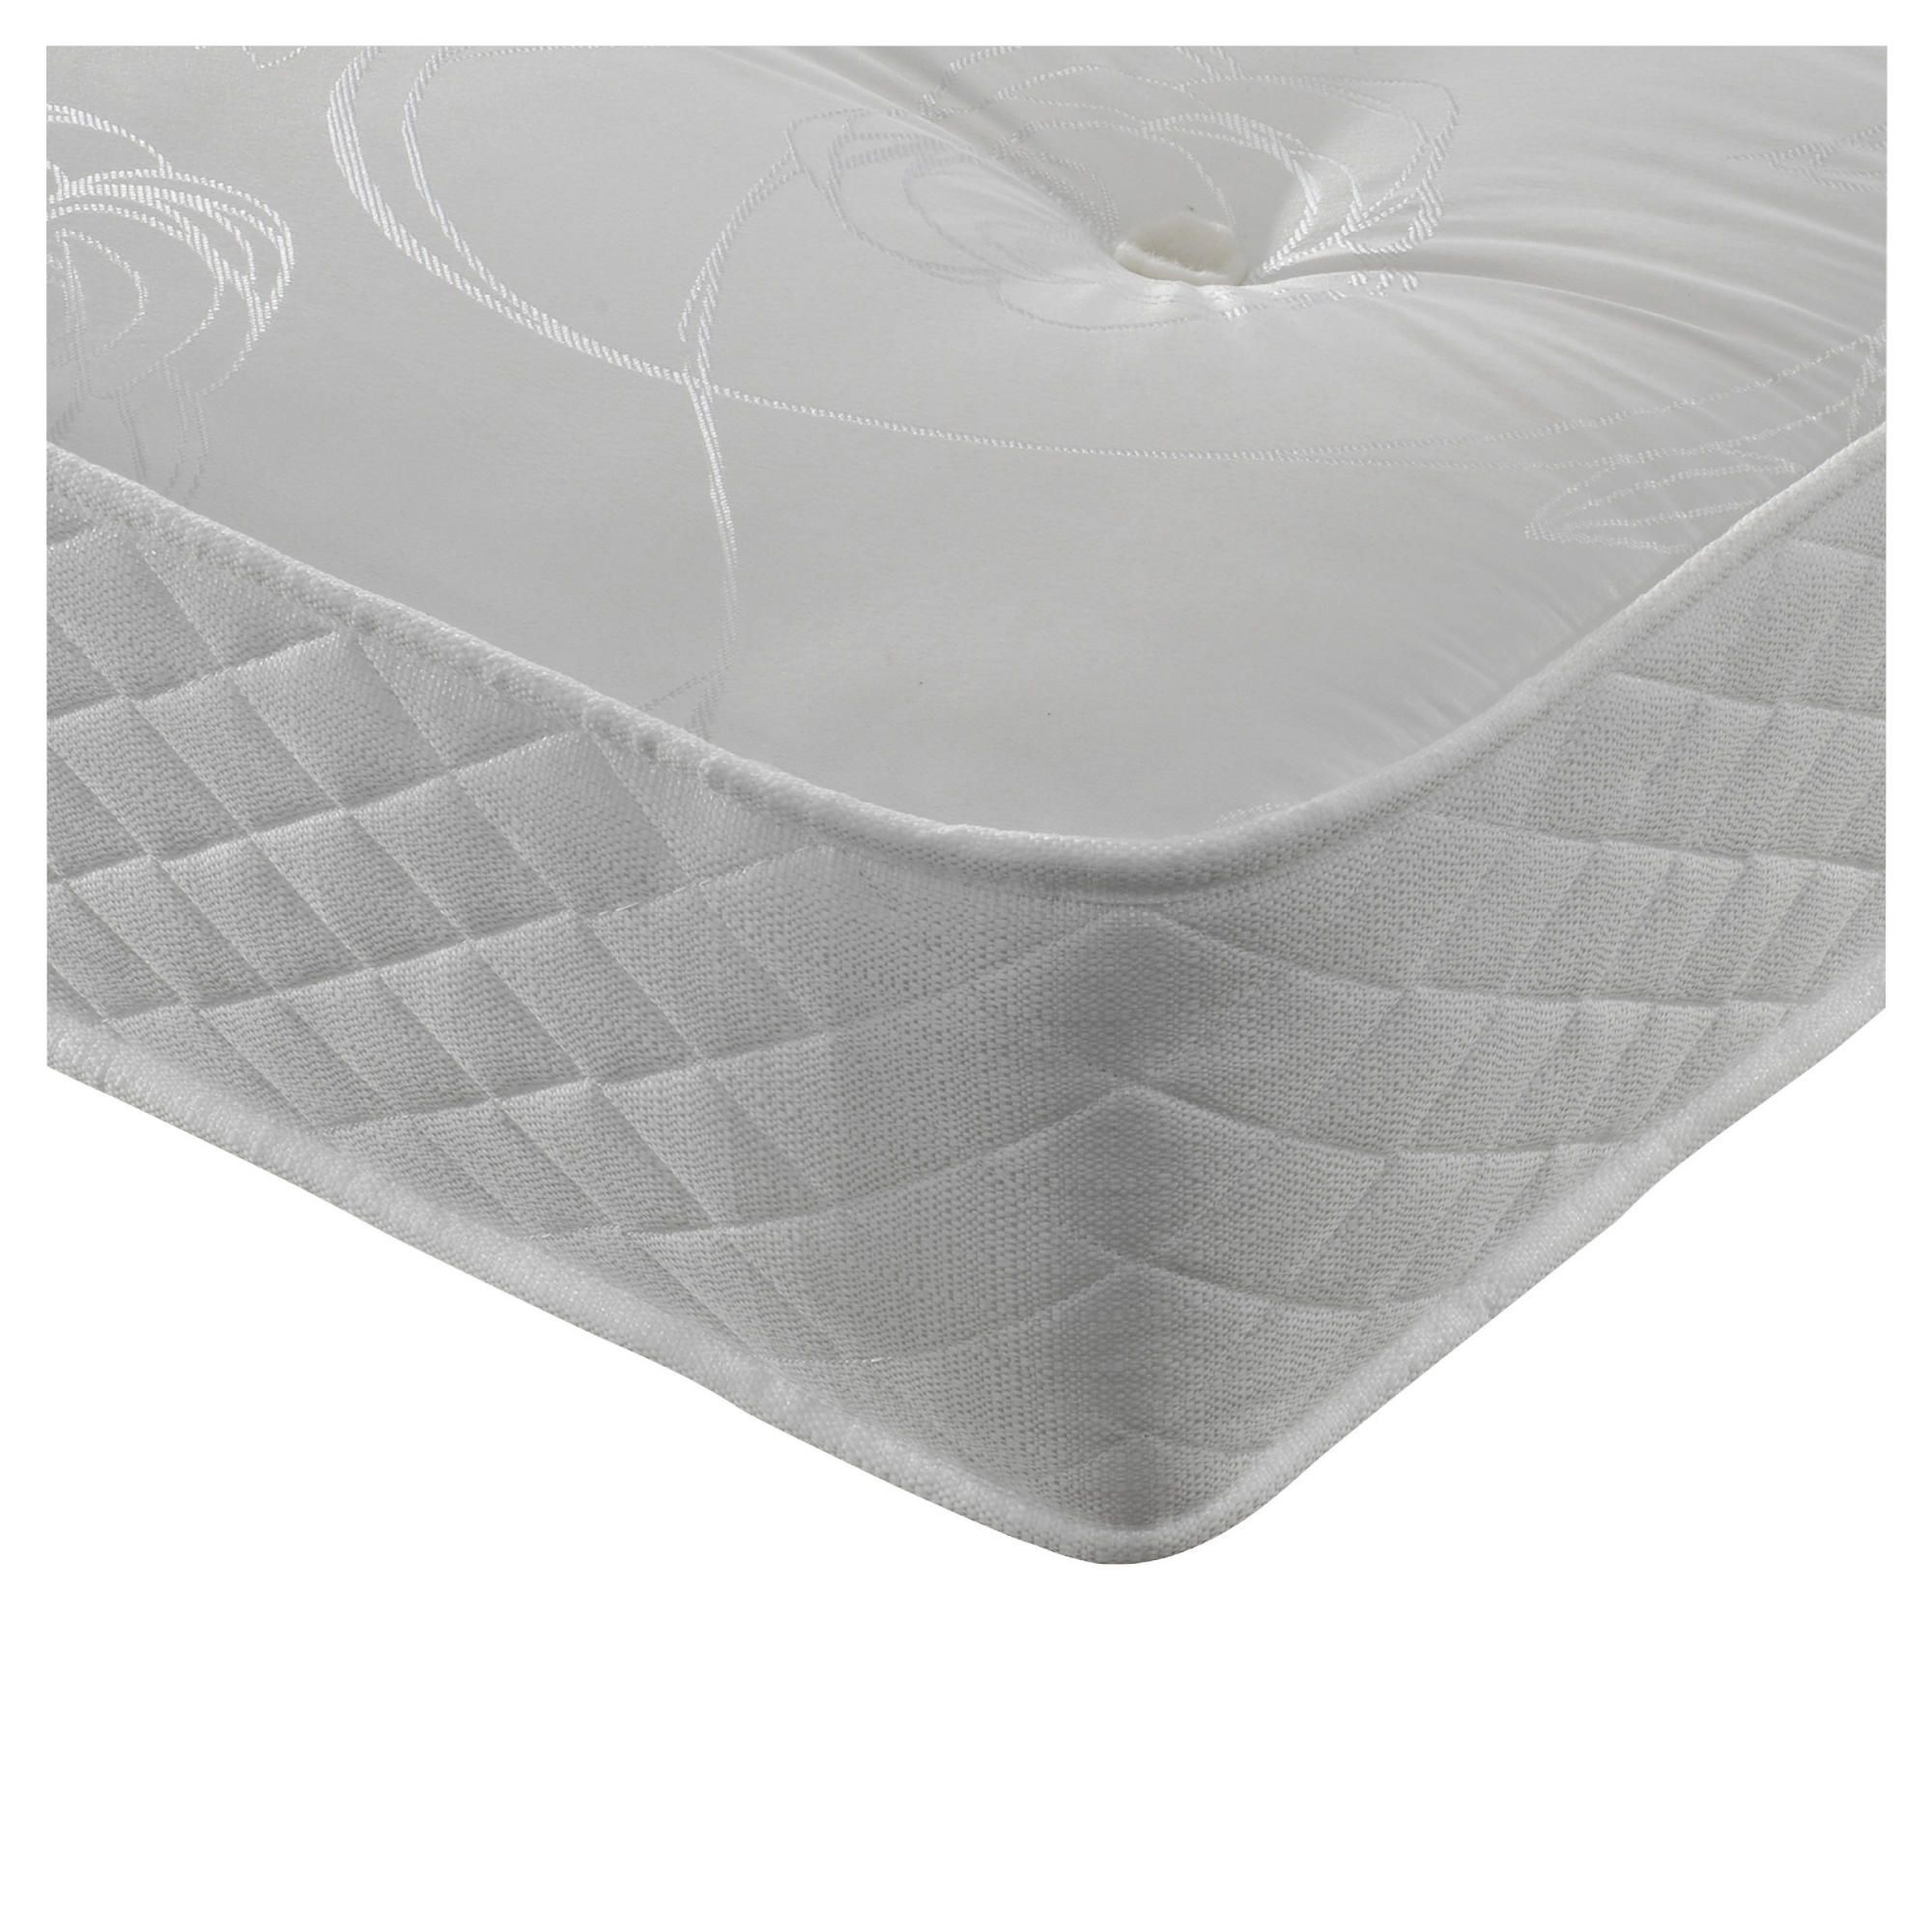 Silentnight Miracoil Comfort Ortho Tuft King Size Mattress at Tesco Direct